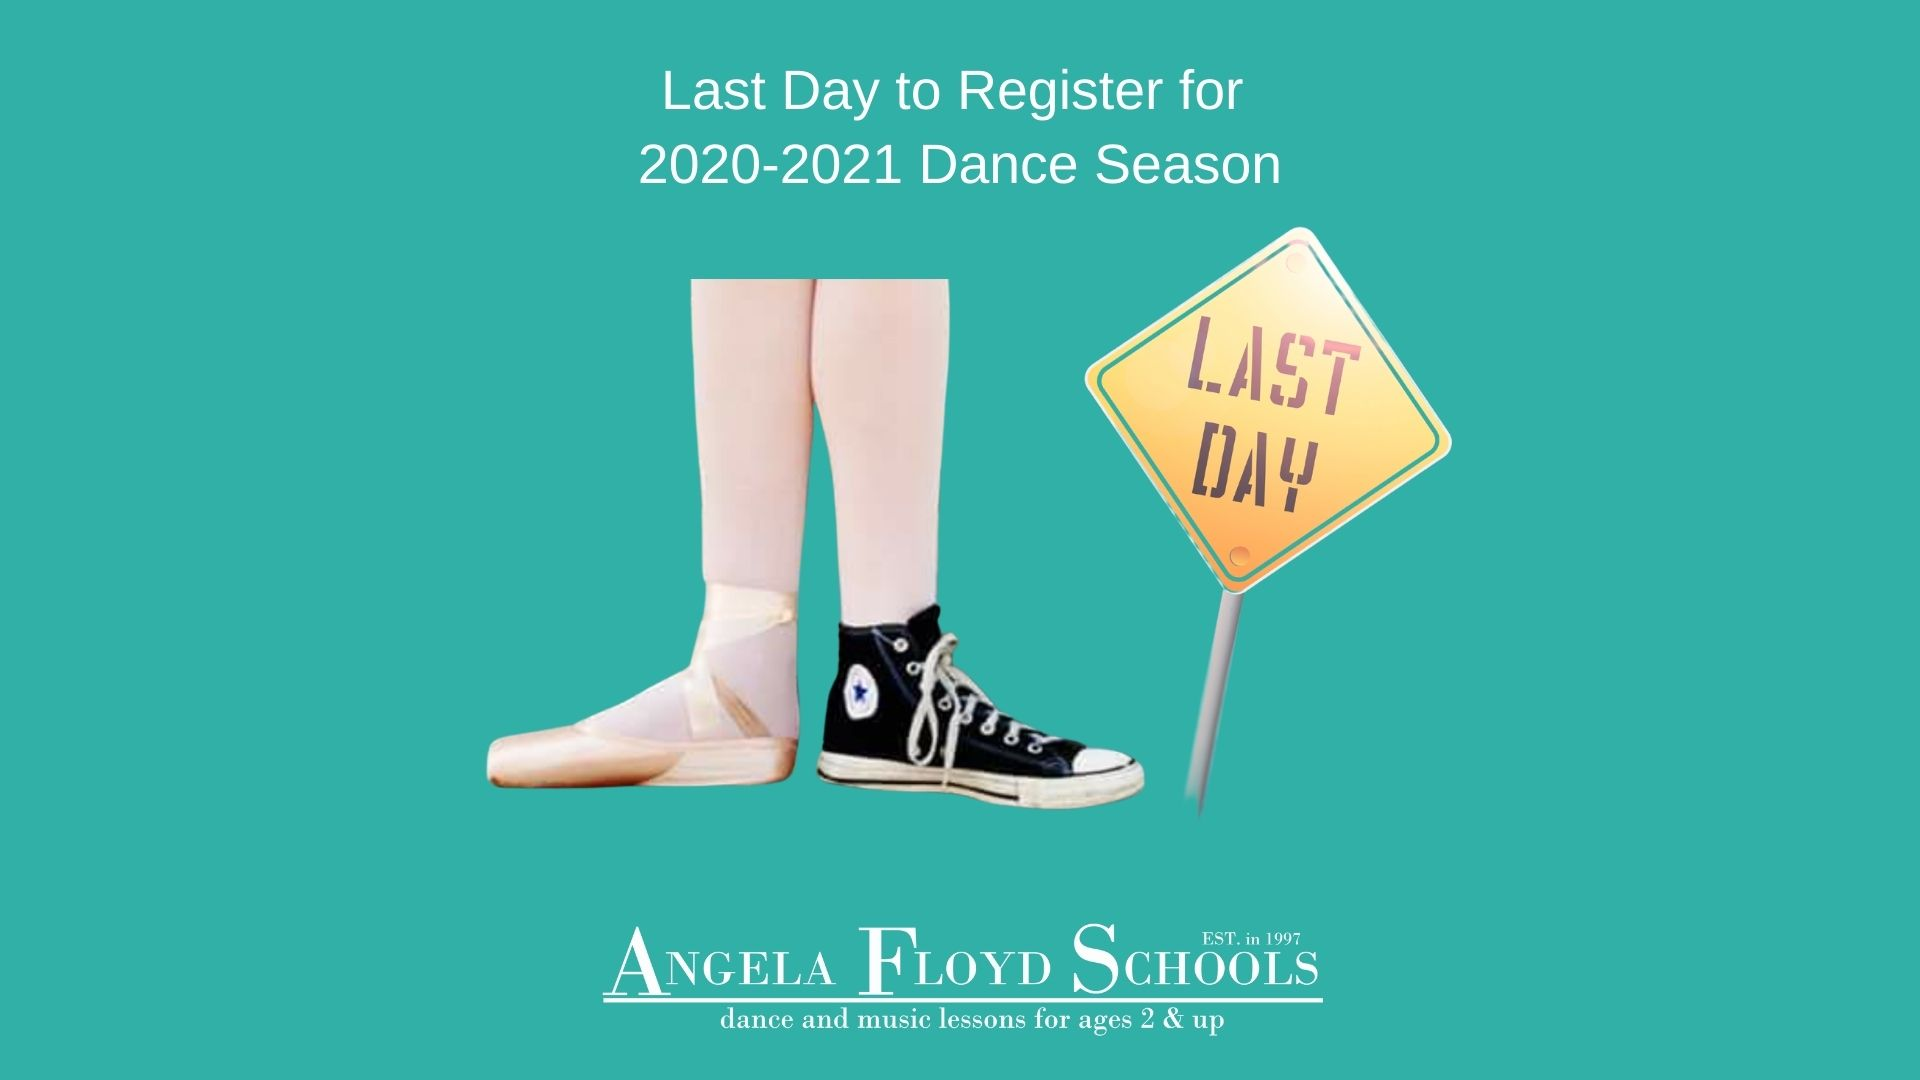 Last Day to register 2020-21